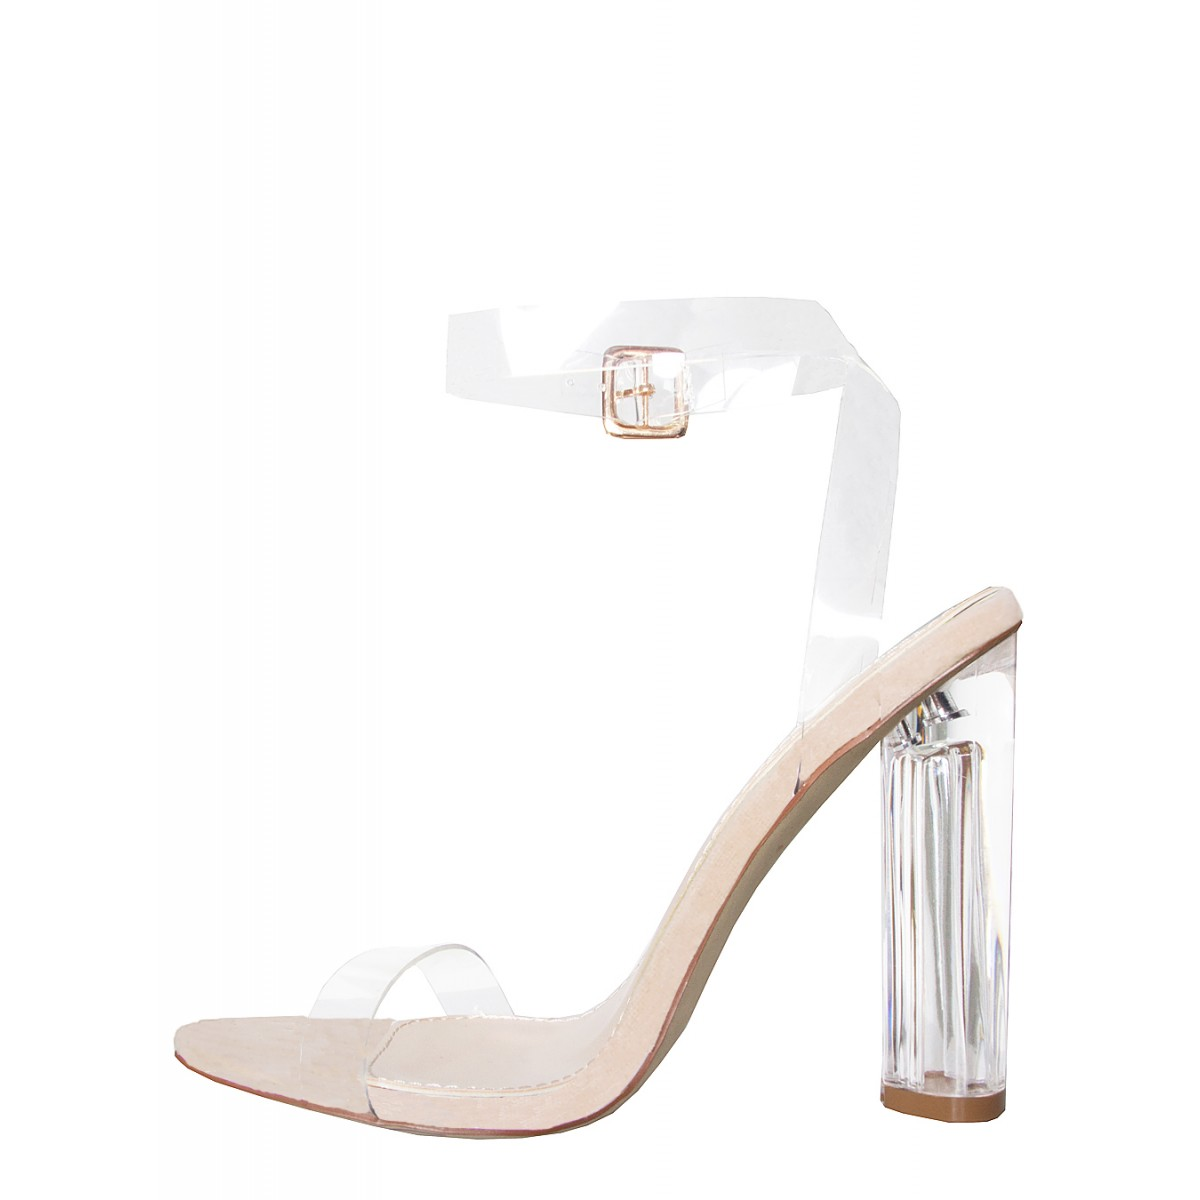 7bf4c0ceb341bb Anastasia Nude Suede Perspex Black Barely There Heels   Simmi Shoes